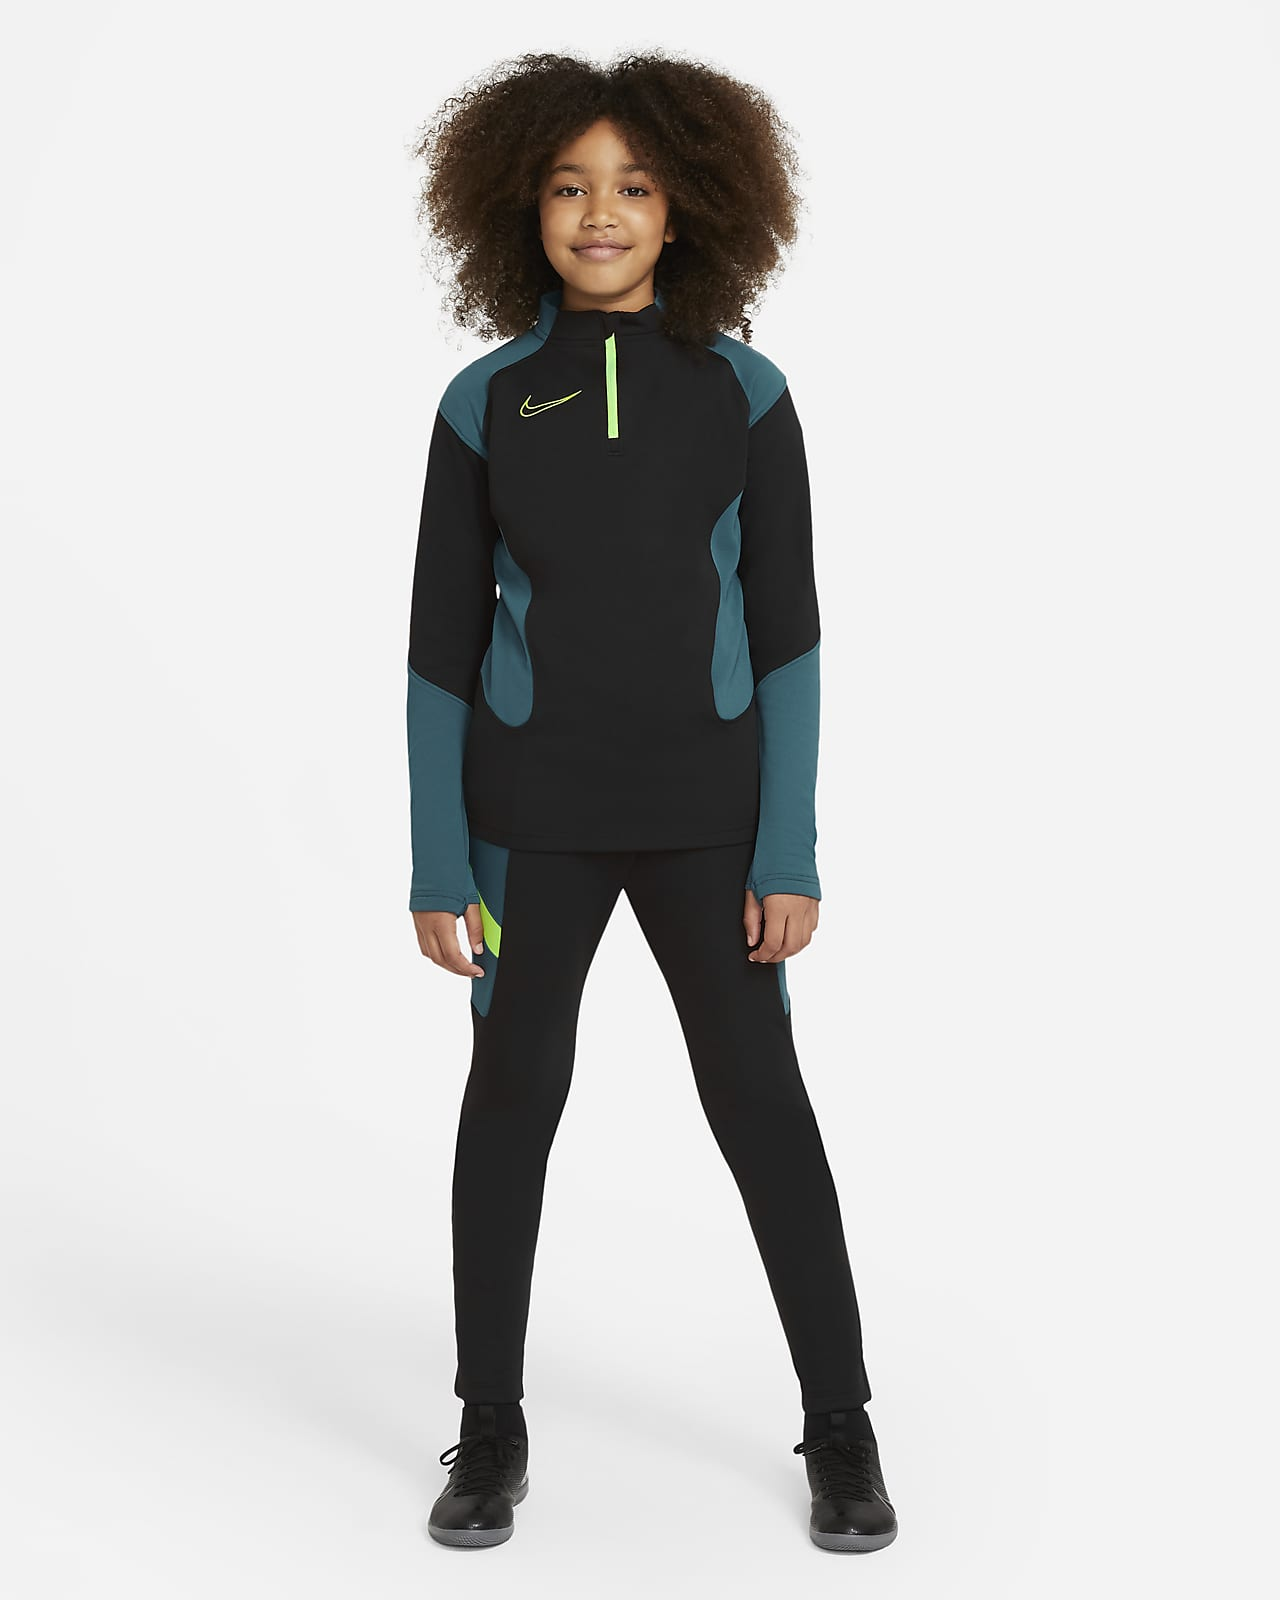 Nike Dri-FIT Academy Older Kids' Knit Football Tracksuit